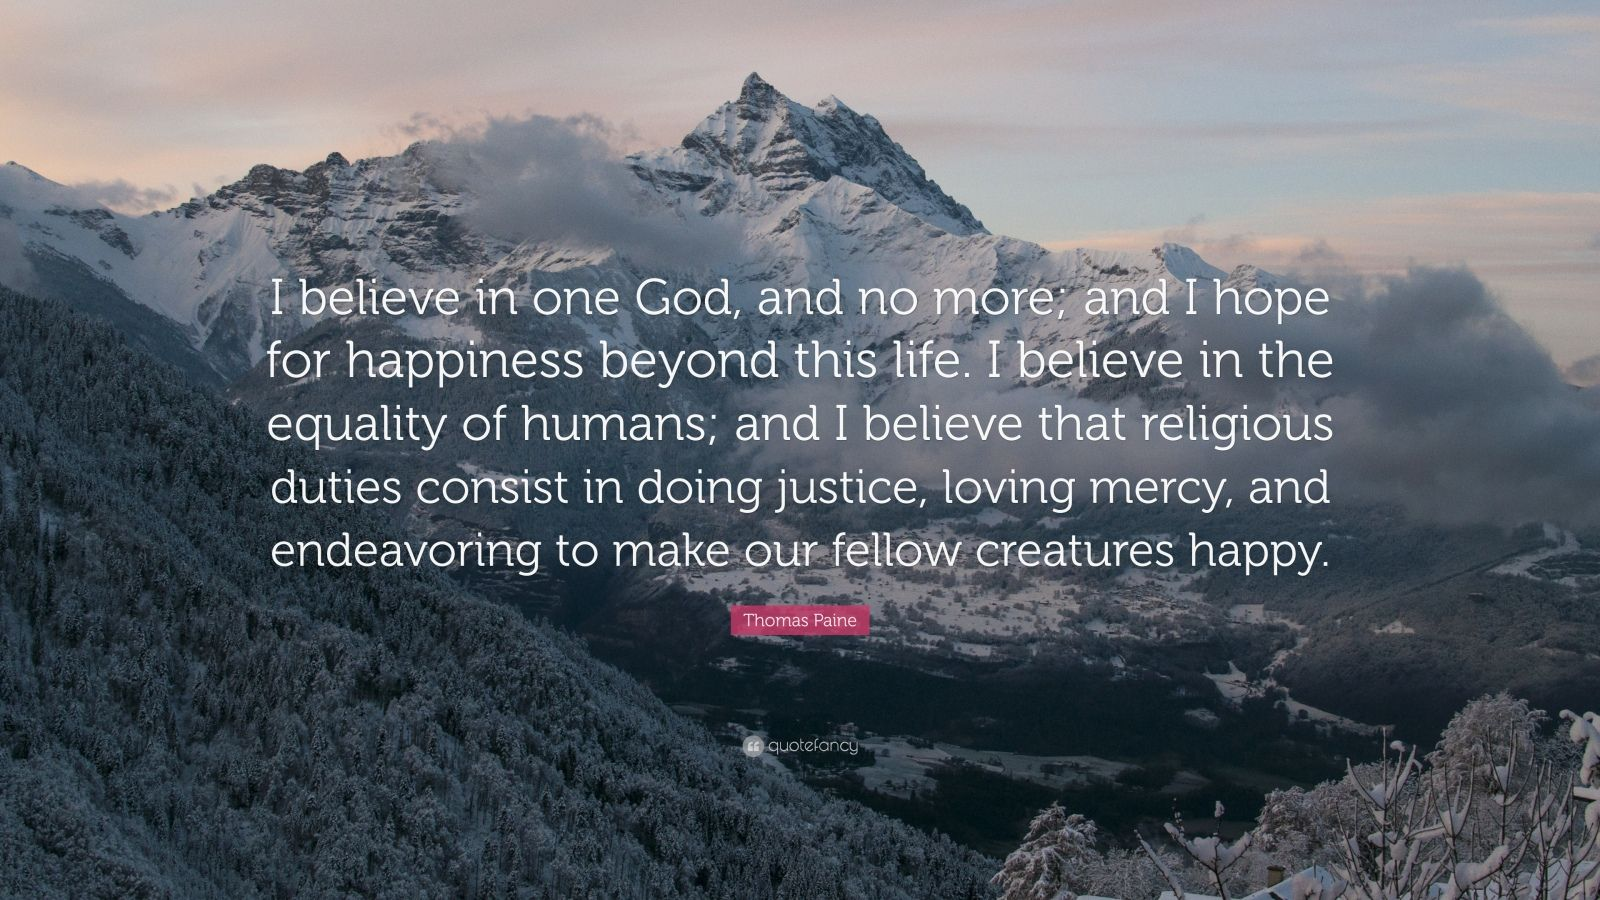 """Thomas Paine Quote: """"I believe in one God, and no more; and I hope for happiness beyond this life. I believe in the equality of humans; and I believe that religious duties consist in doing justice, loving mercy, and endeavoring to make our fellow creatures happy."""""""